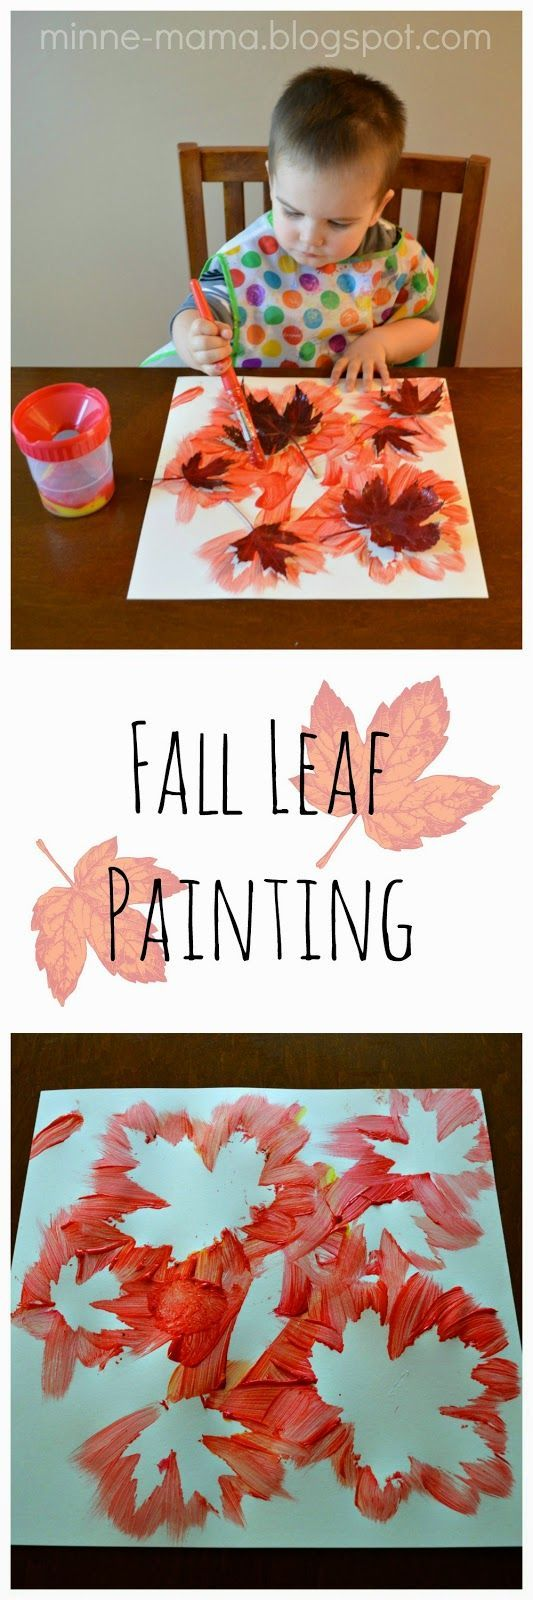 Fall Leaf Painting Crafts For Kids